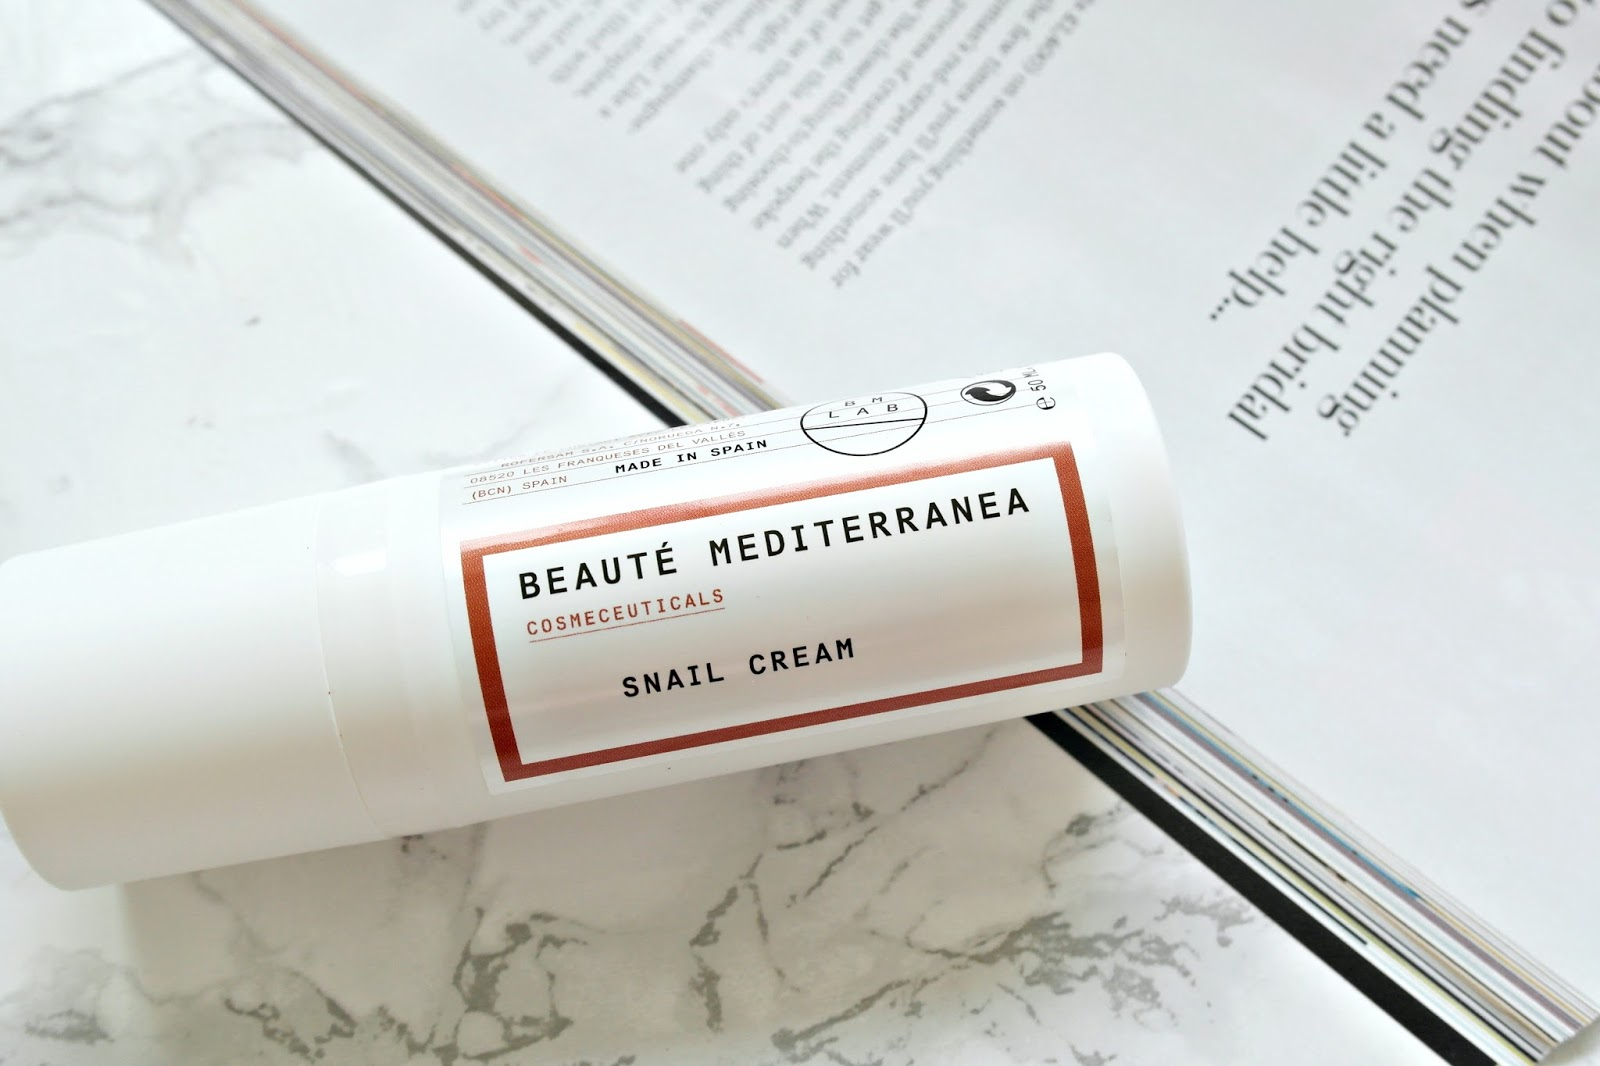 Beaute Mediterranea Snail Cream Review